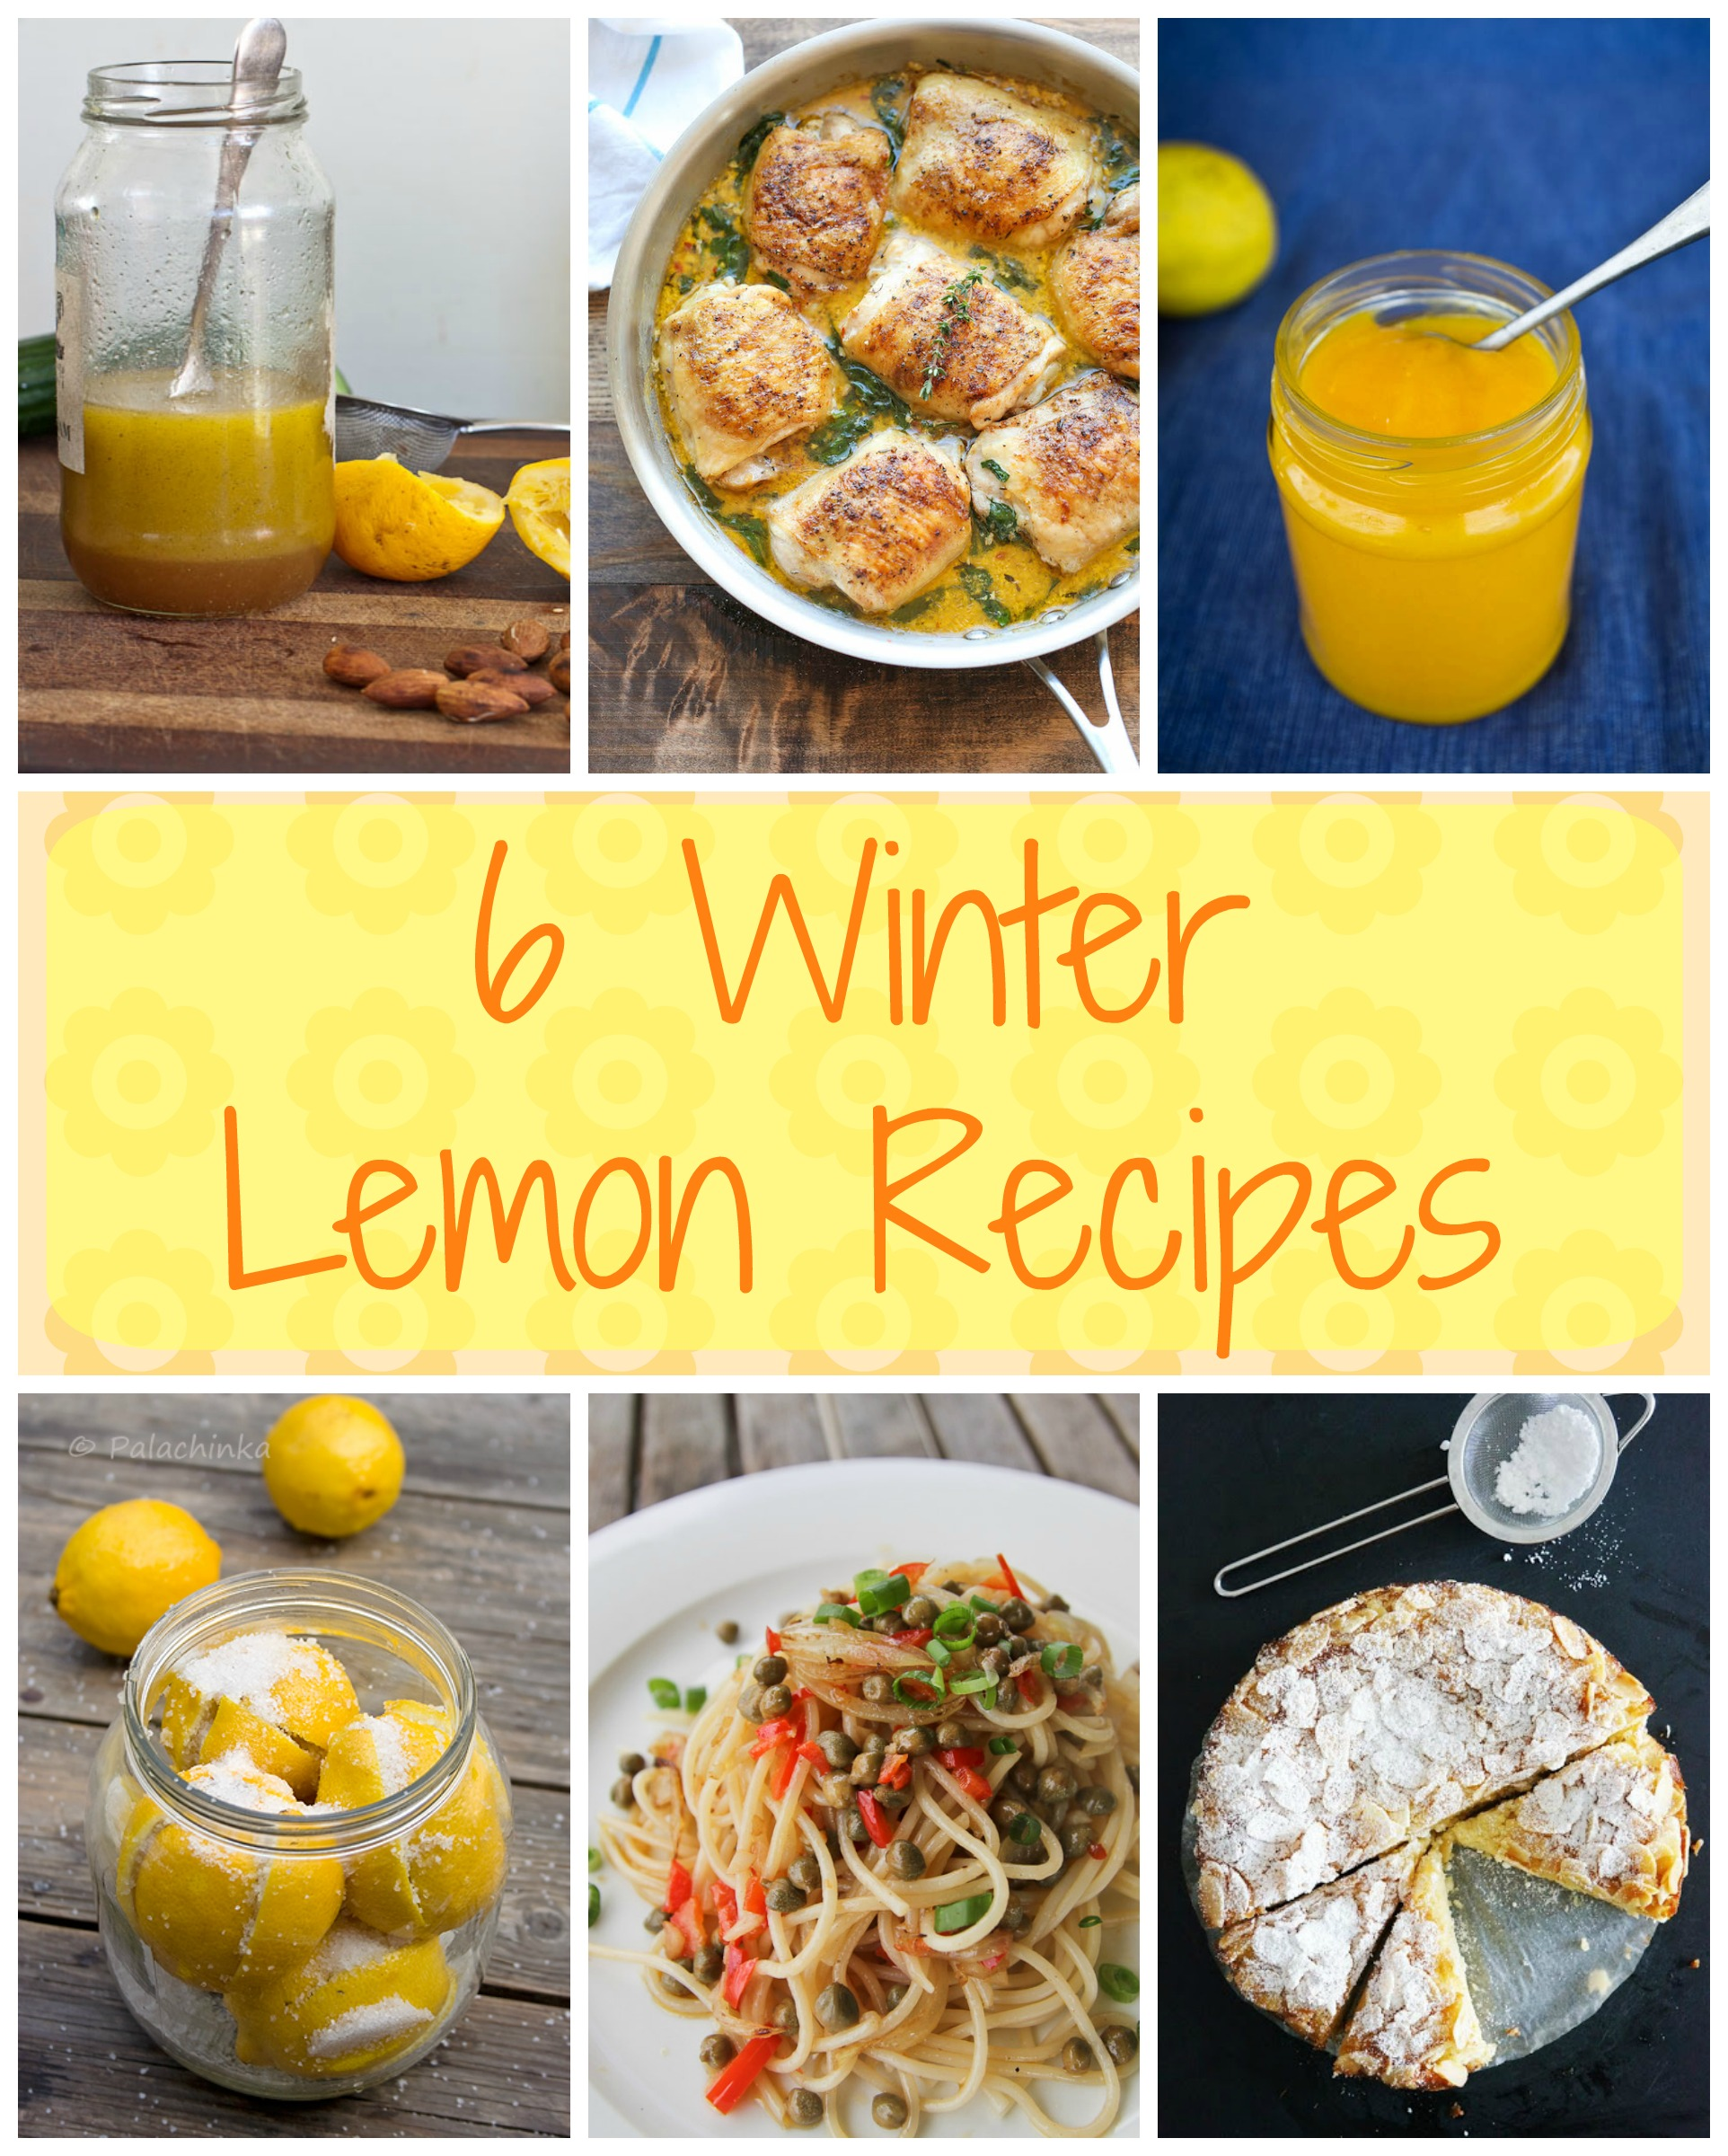 6 Winter Lemon Recipes